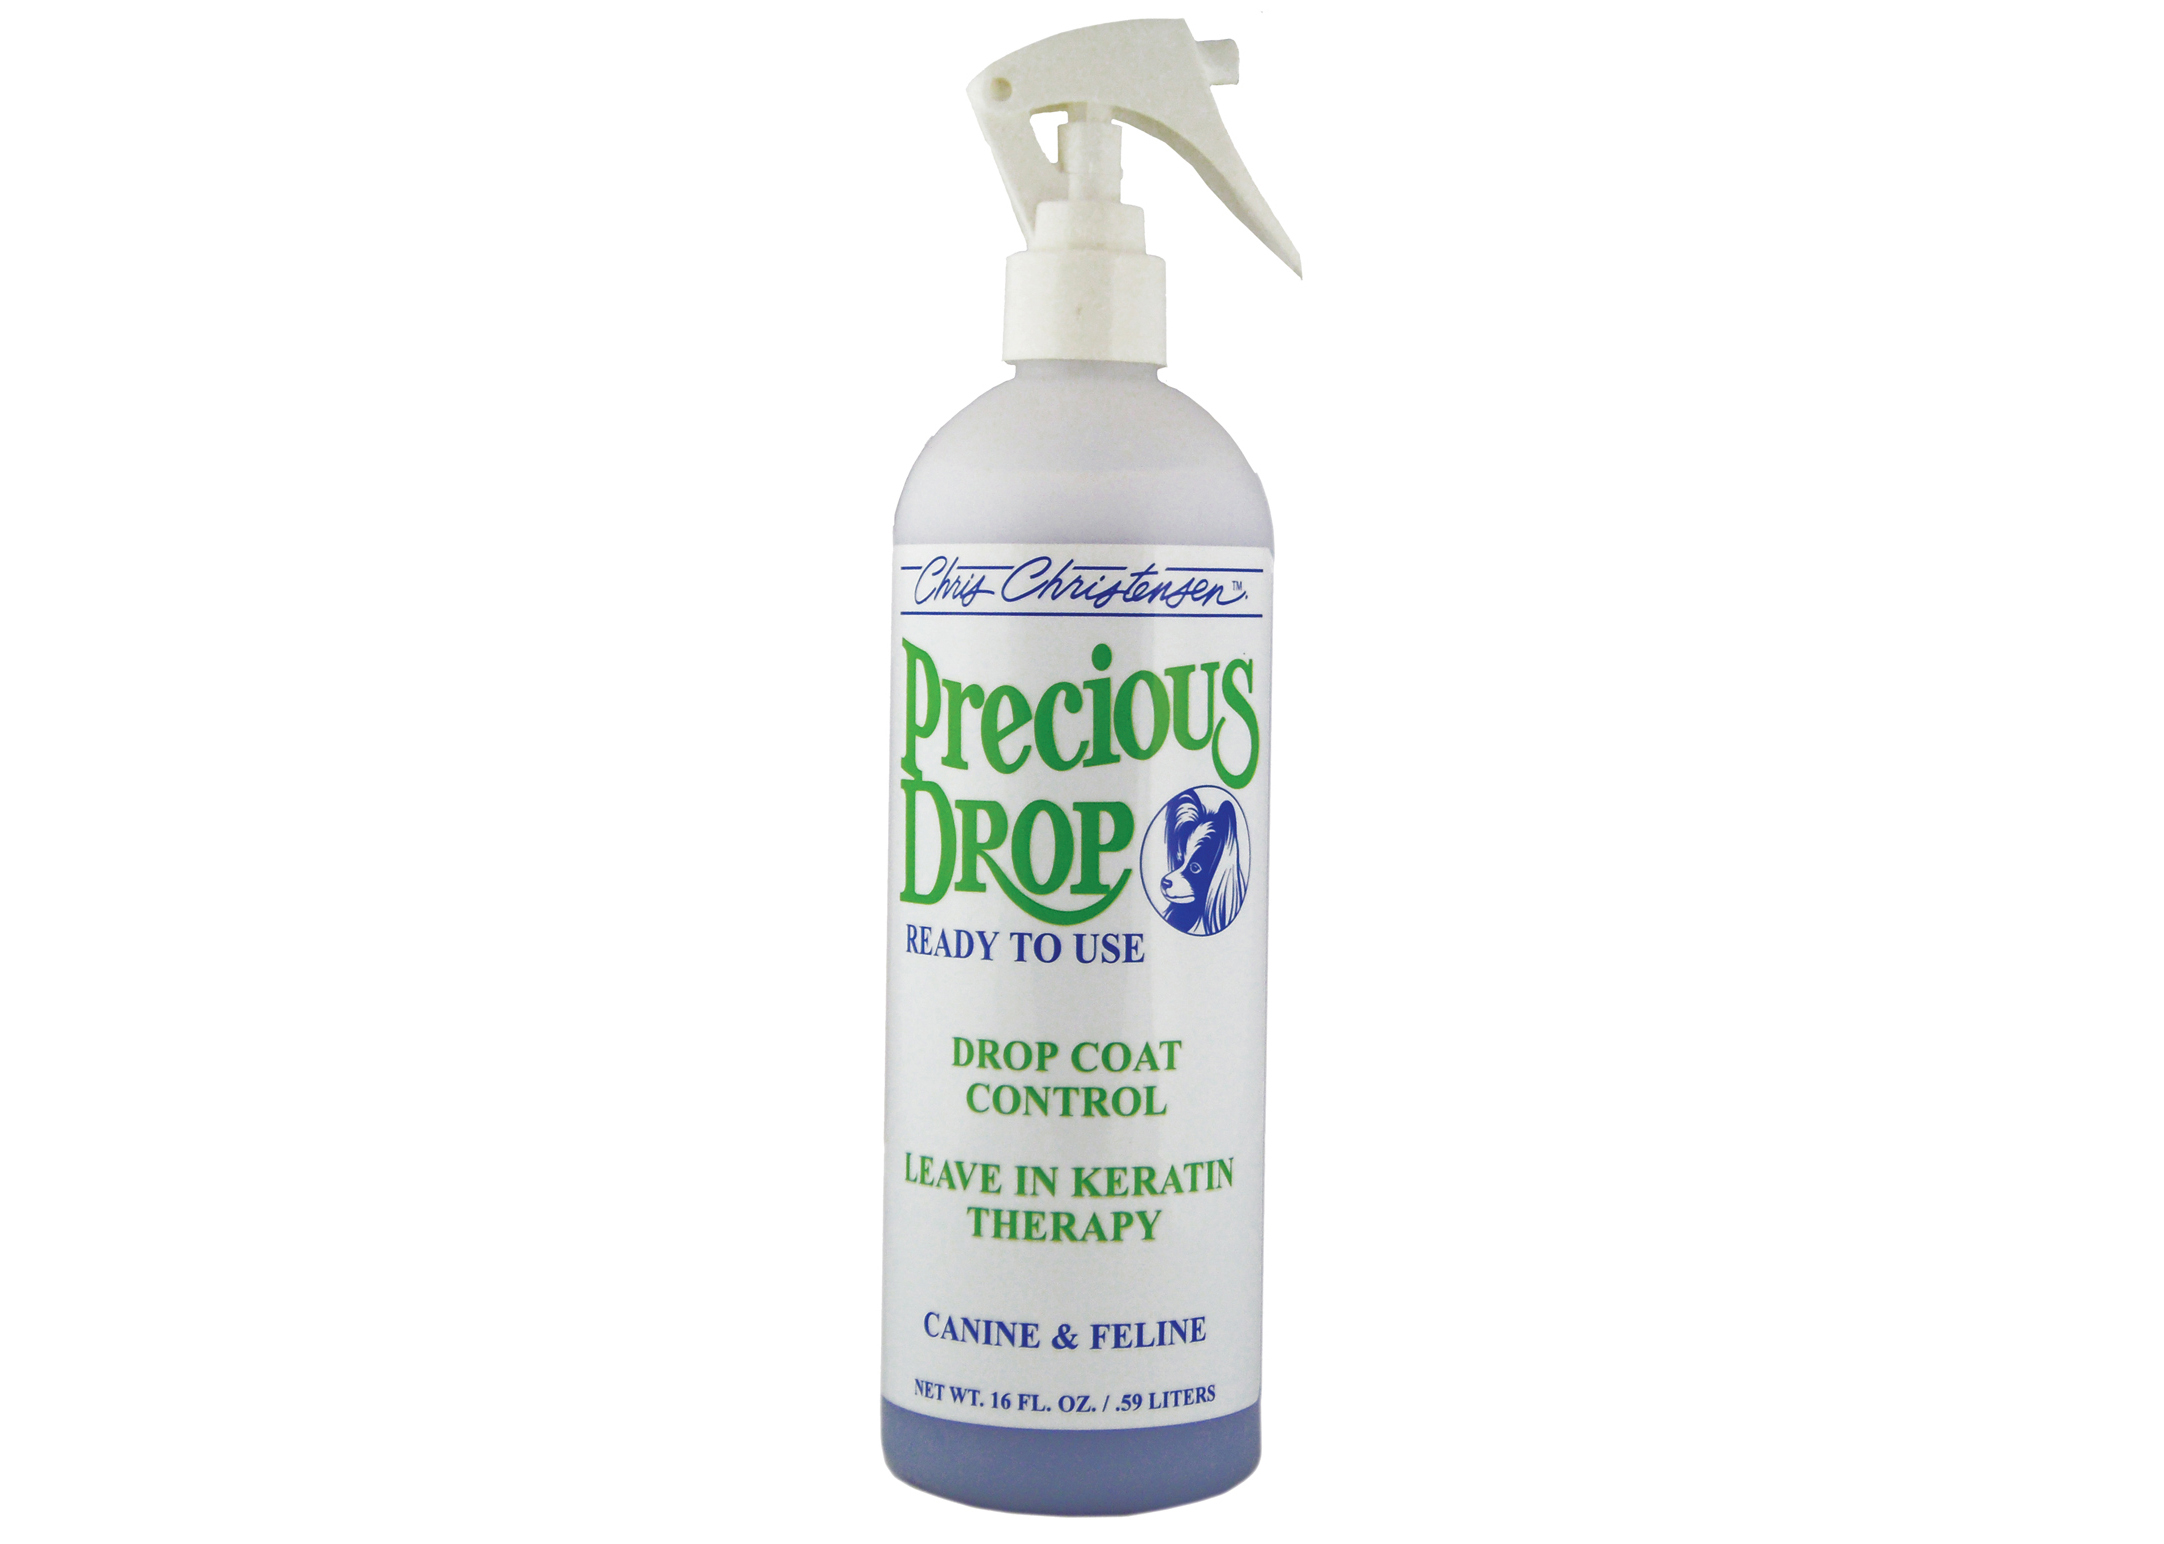 Chris Christensen Systems Precious Drops Concentrate Drop Coat Control For Dogs, Cats And Horses